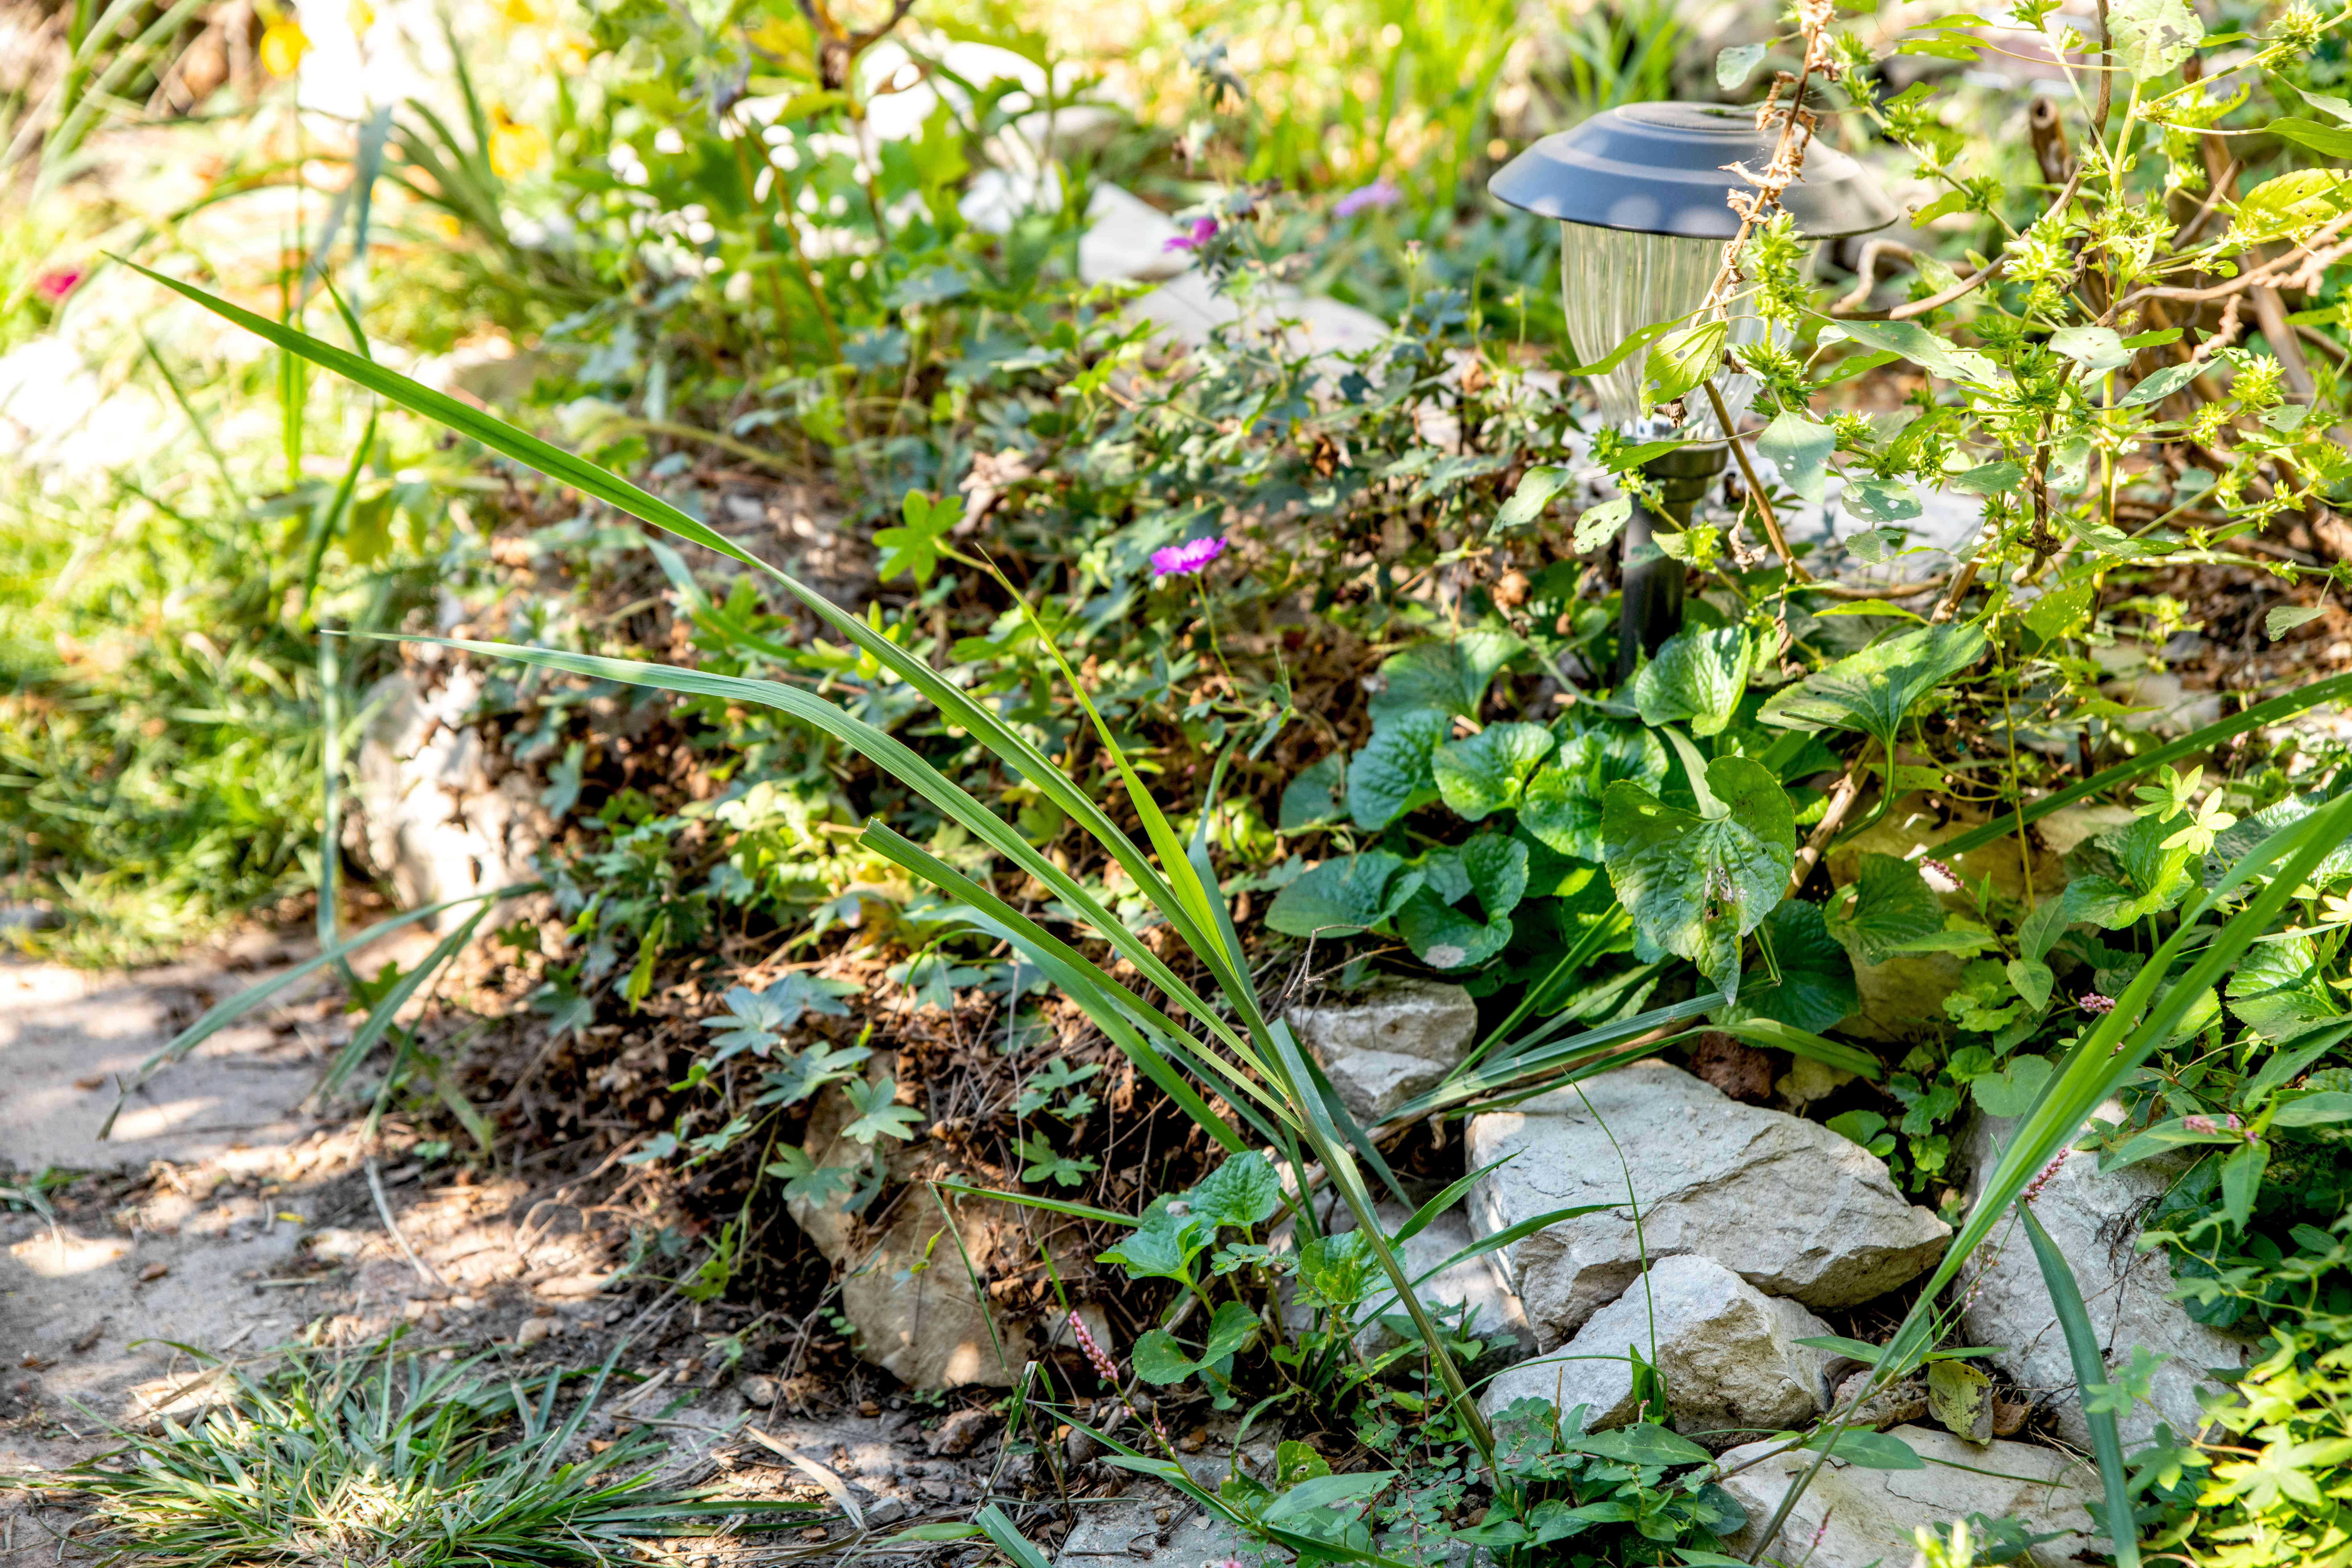 Weed plants covering garden rocks, outdoor light and pathway